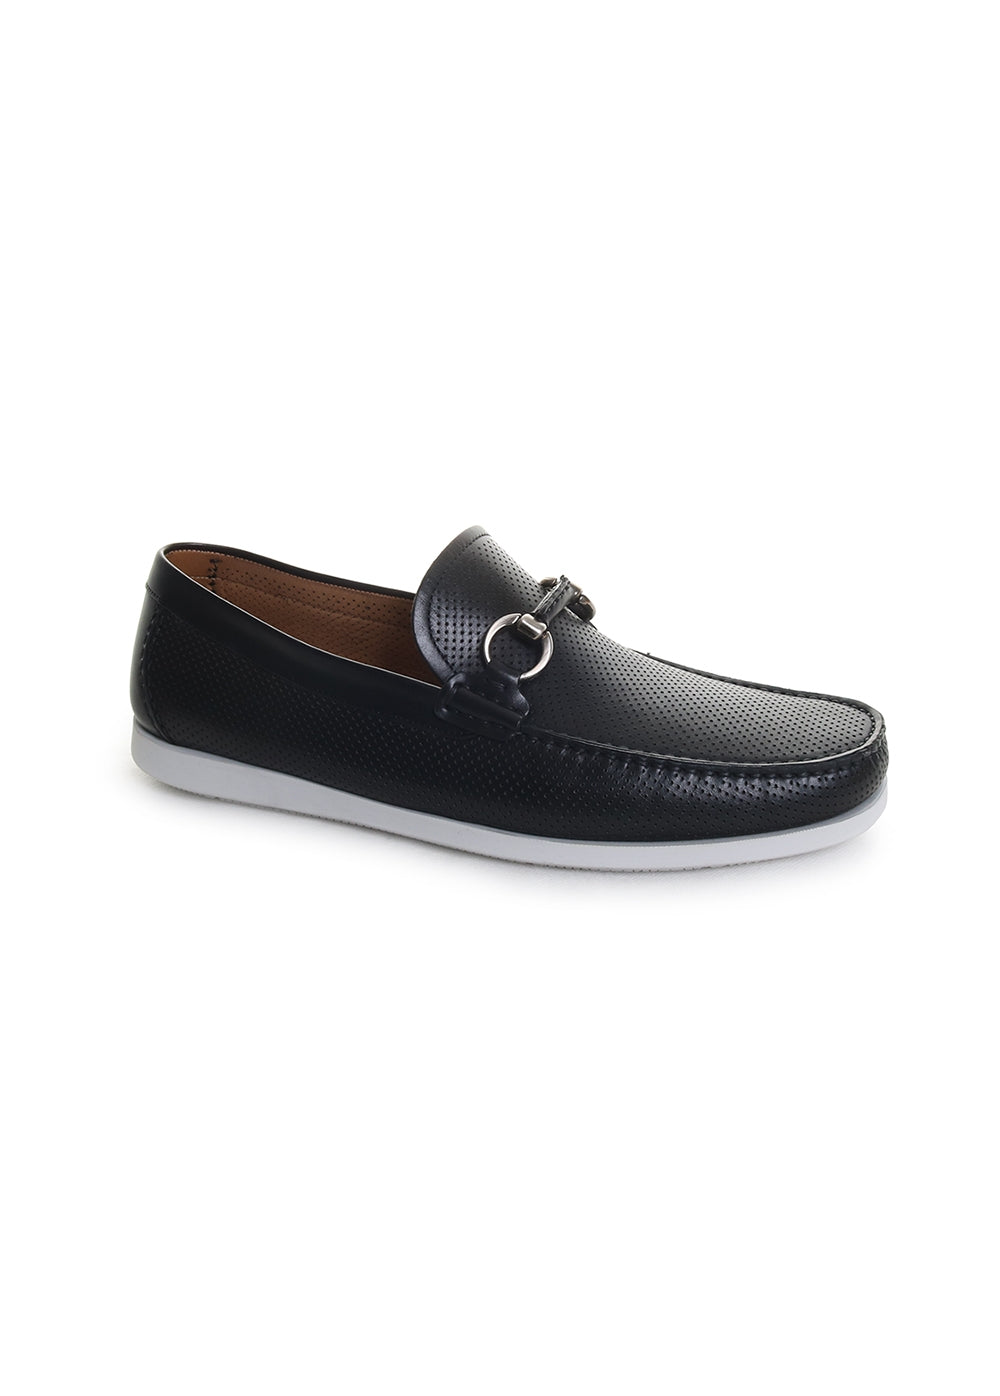 Beasley Perforated Moc Toe Bit Loafers